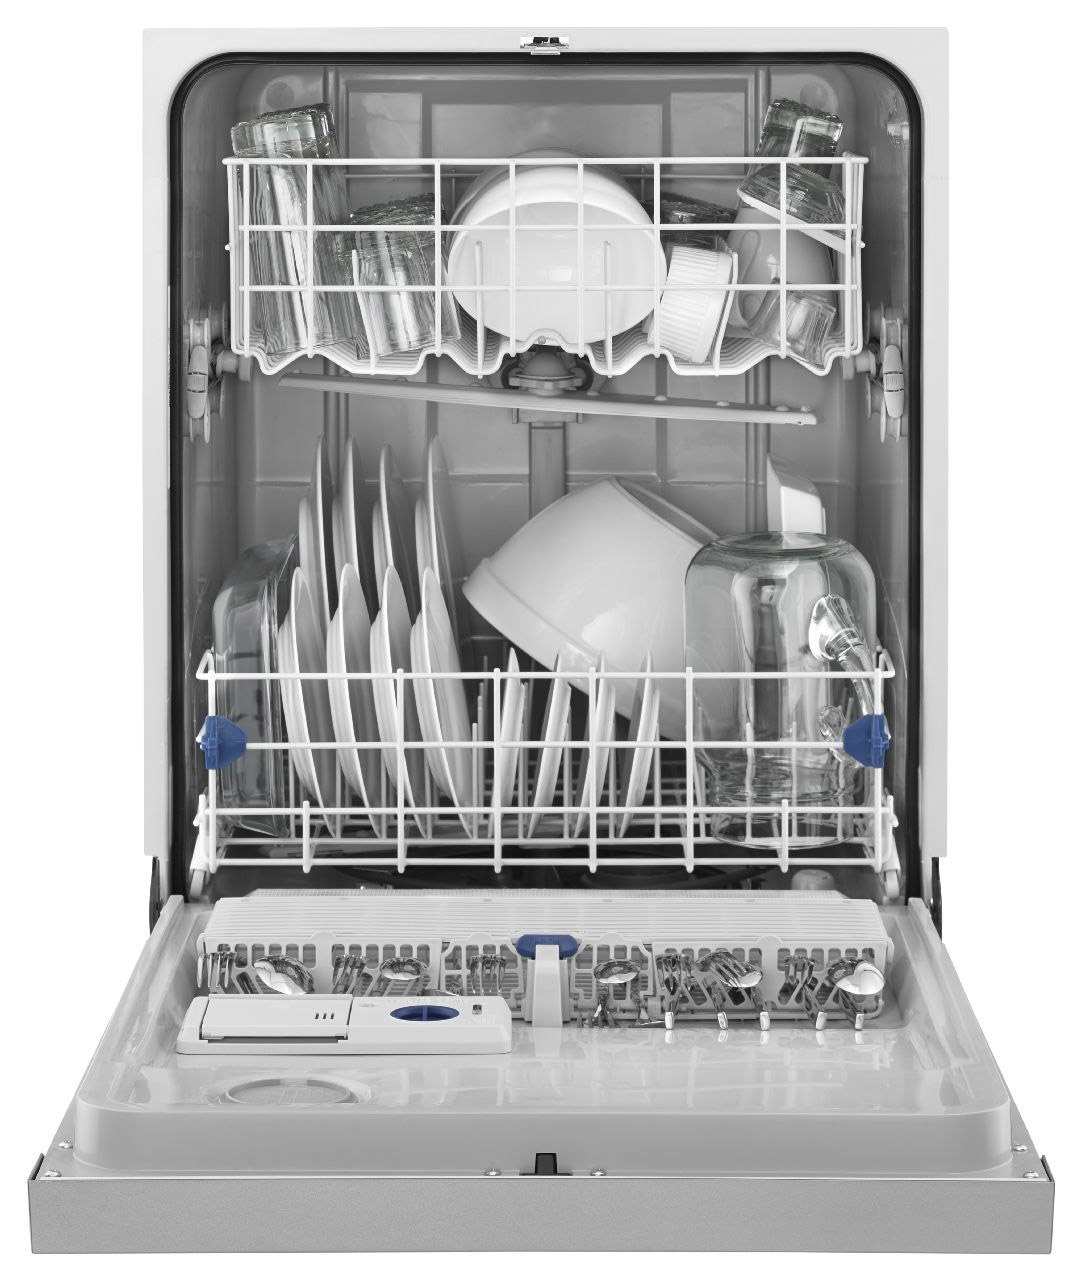 Whirlpool Stainless Built In Dishwasher Wdf520padm